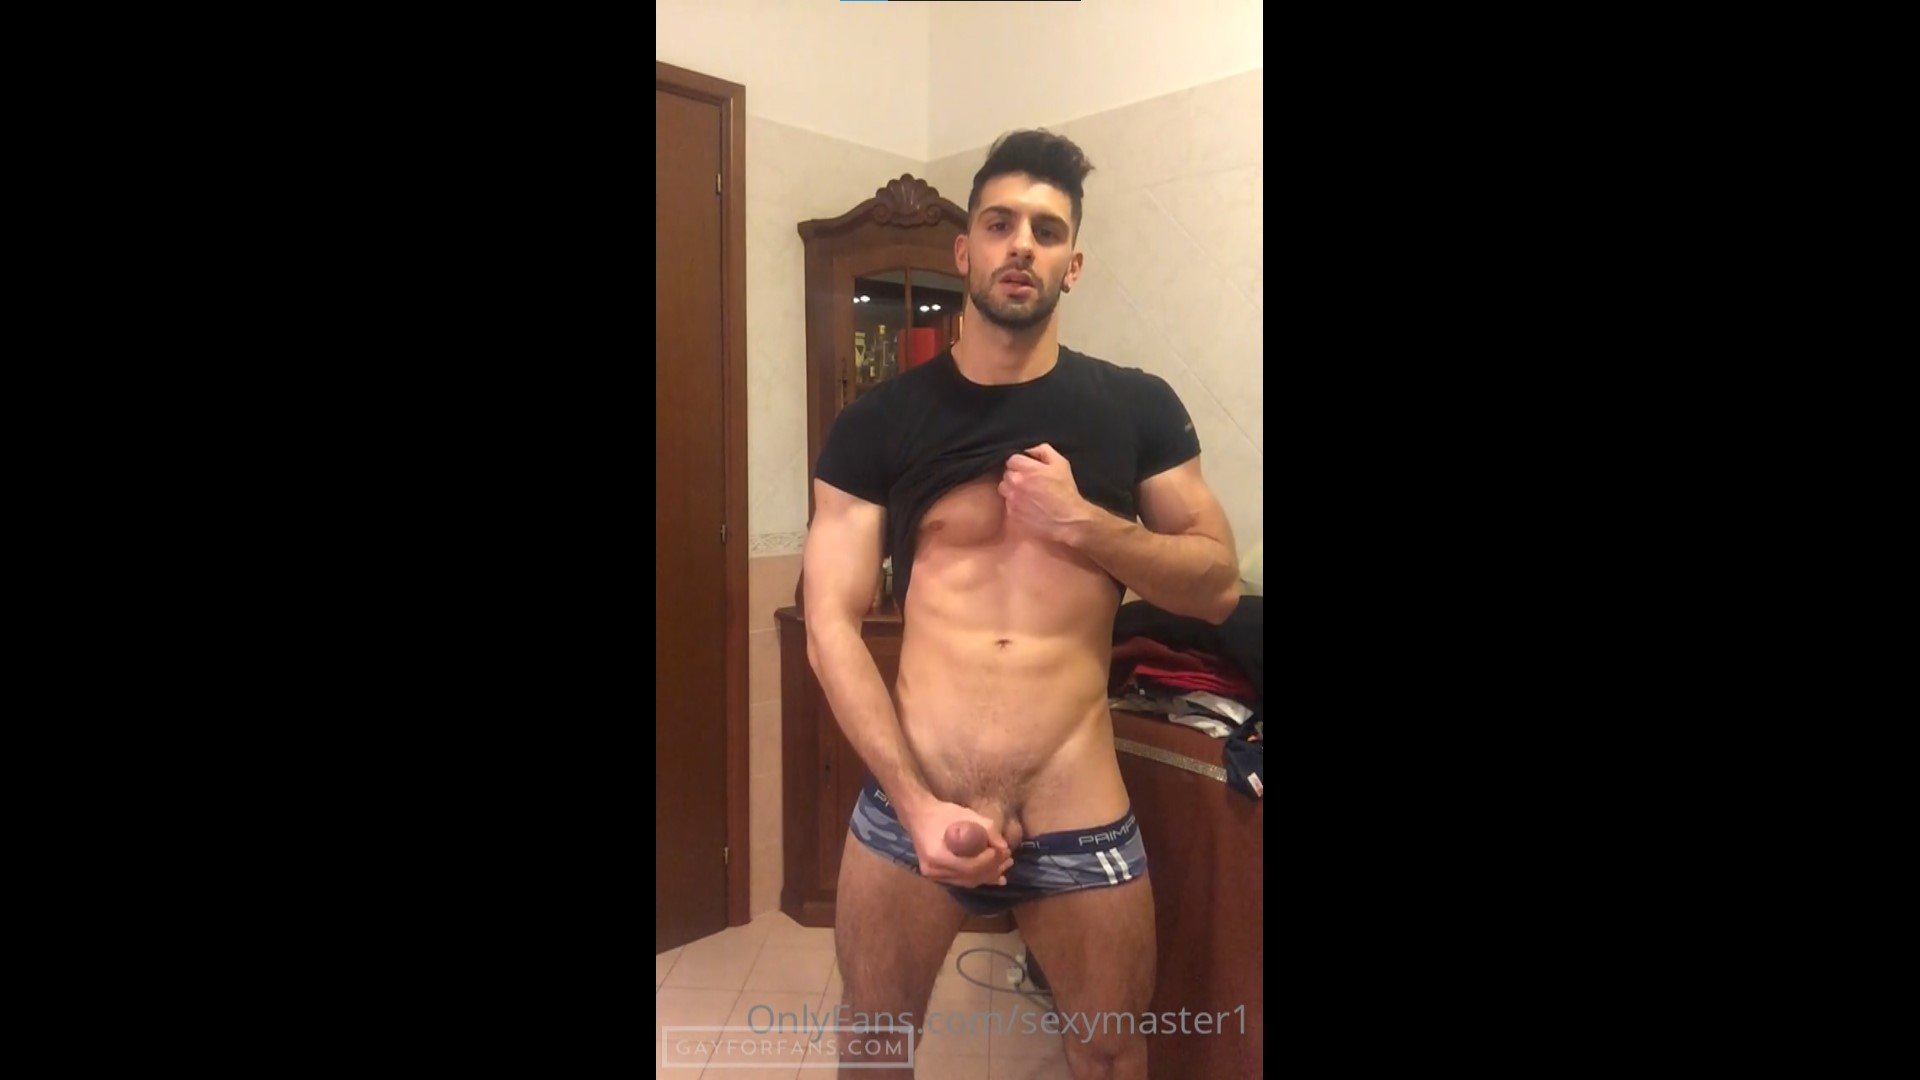 Showing off my abs and jerking off - Katoptris